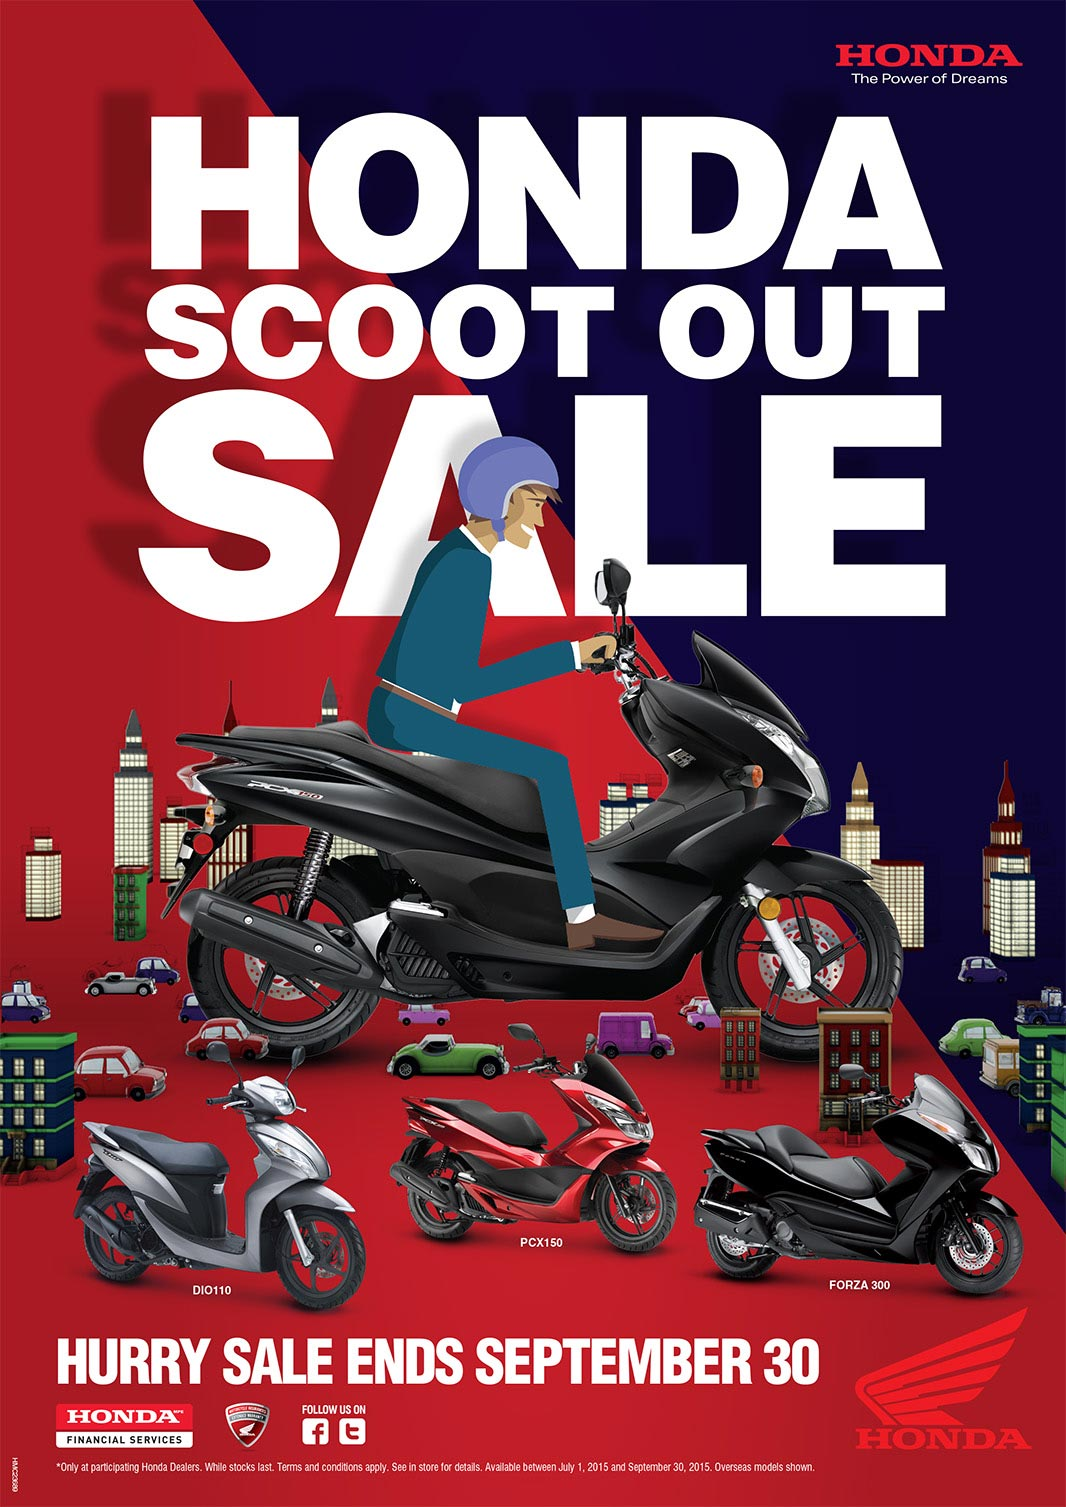 Honda Scoot Out Sale